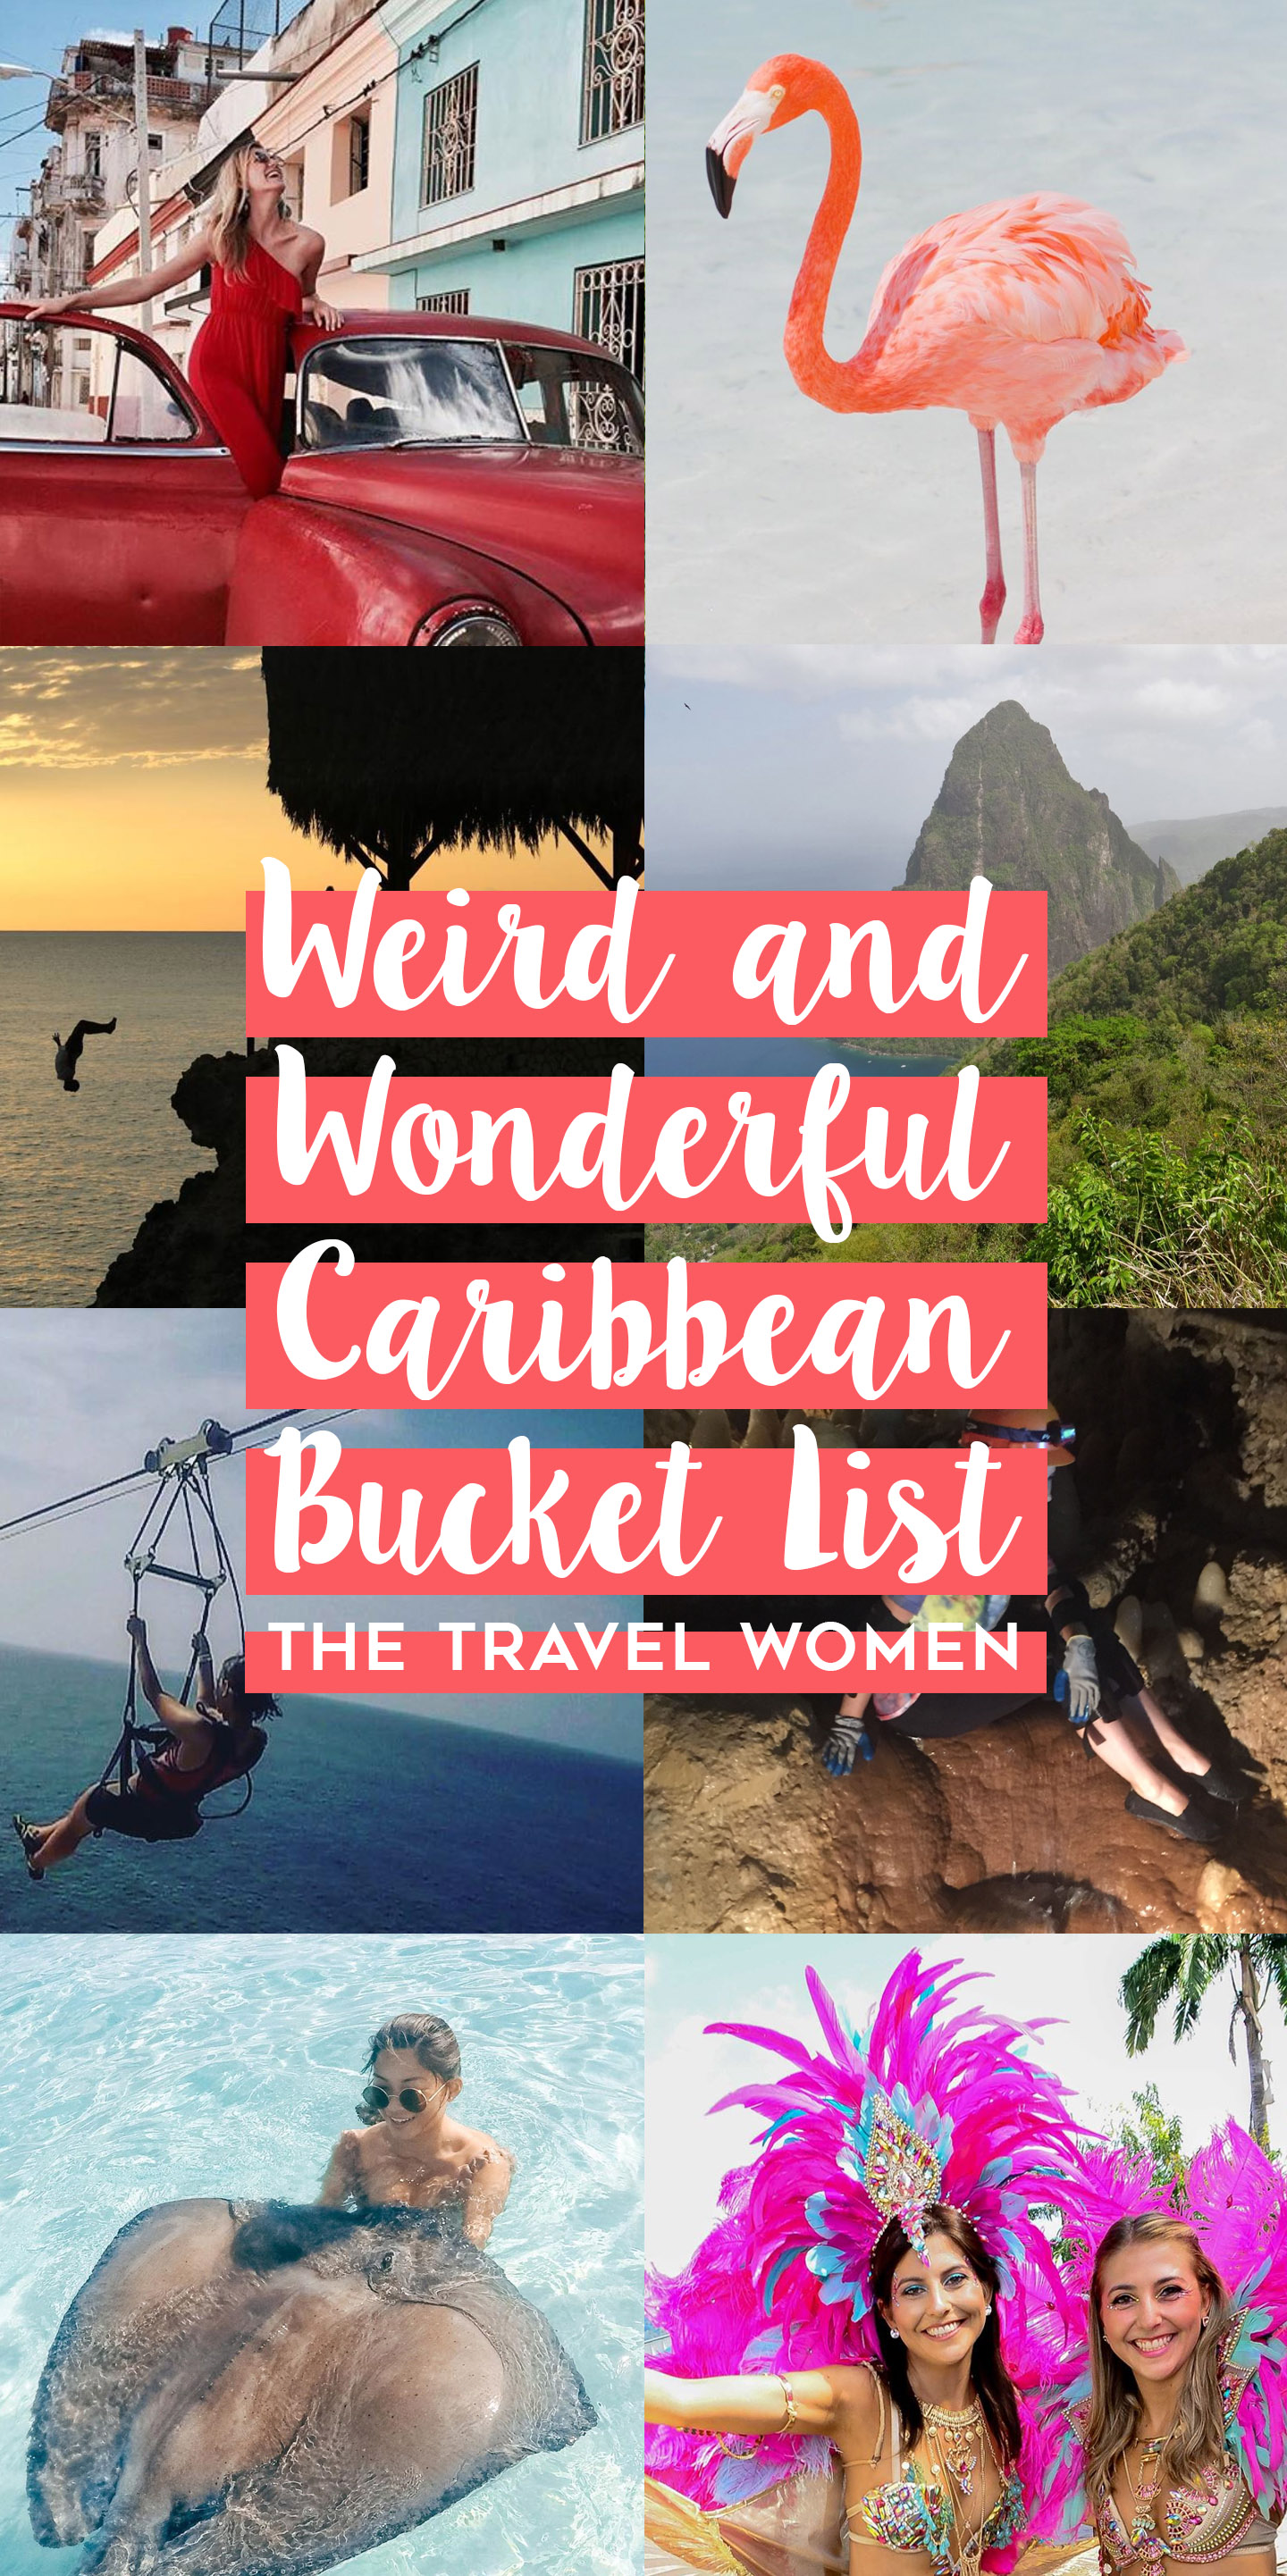 Caribbean Bucket List